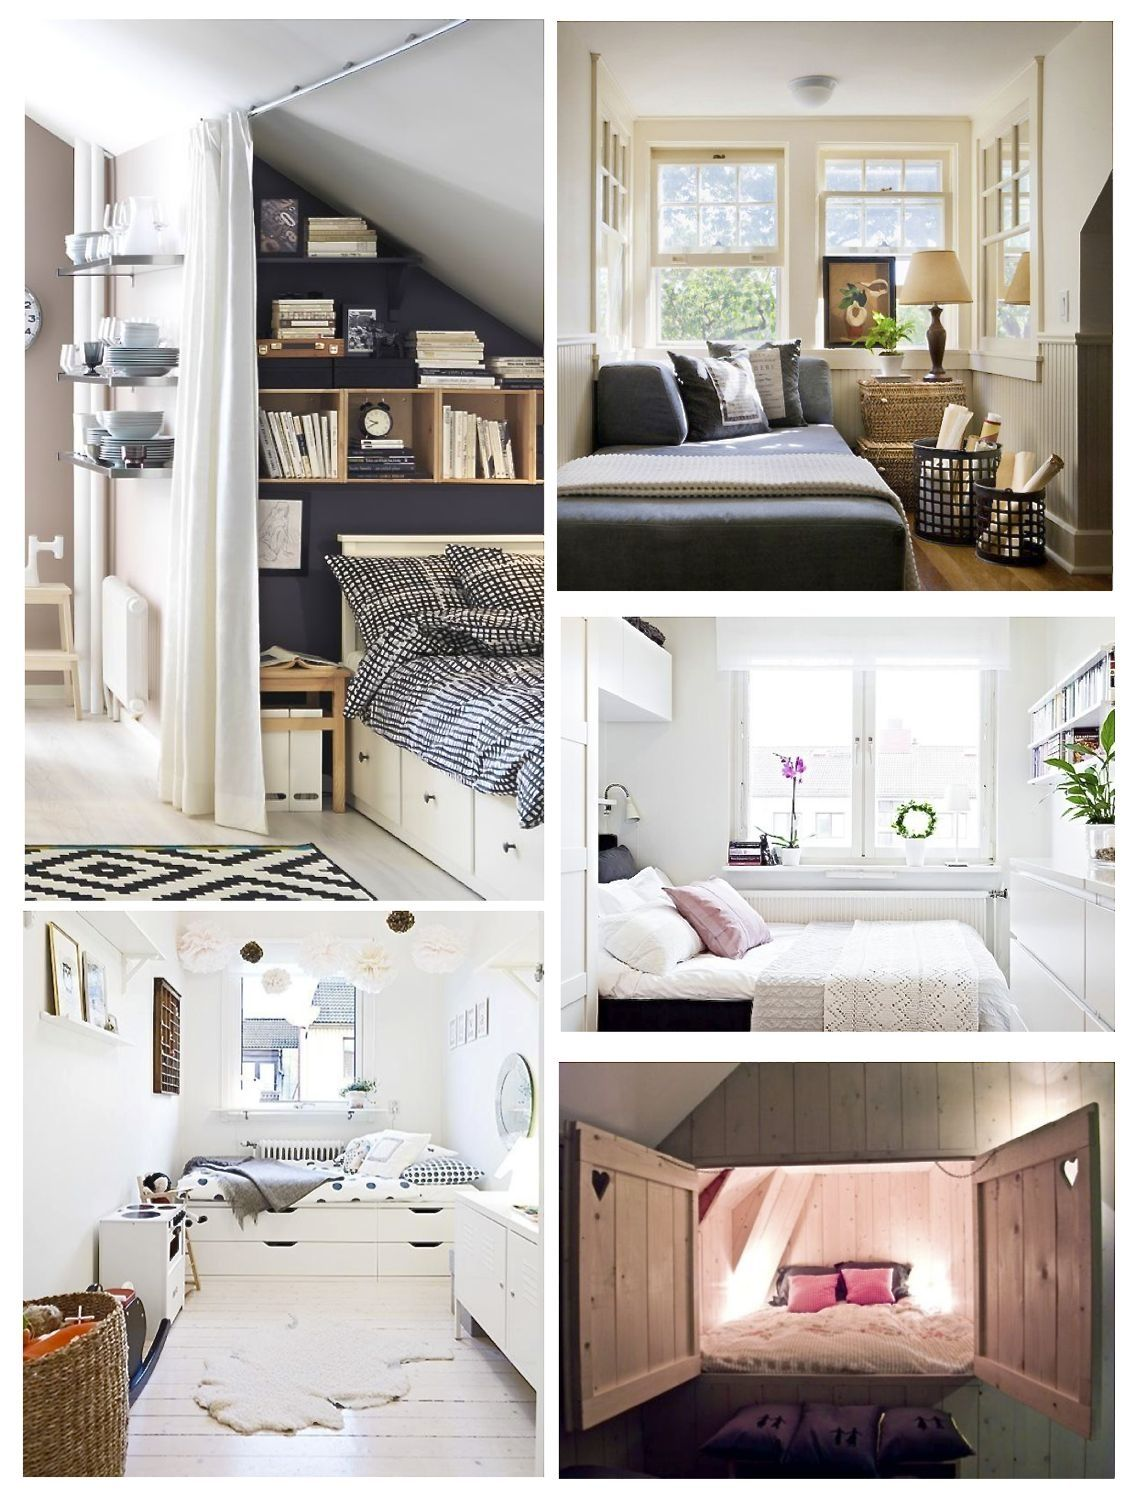 Ideas For A Very Small Bedroom Small Bedroom In 2019 Small Room